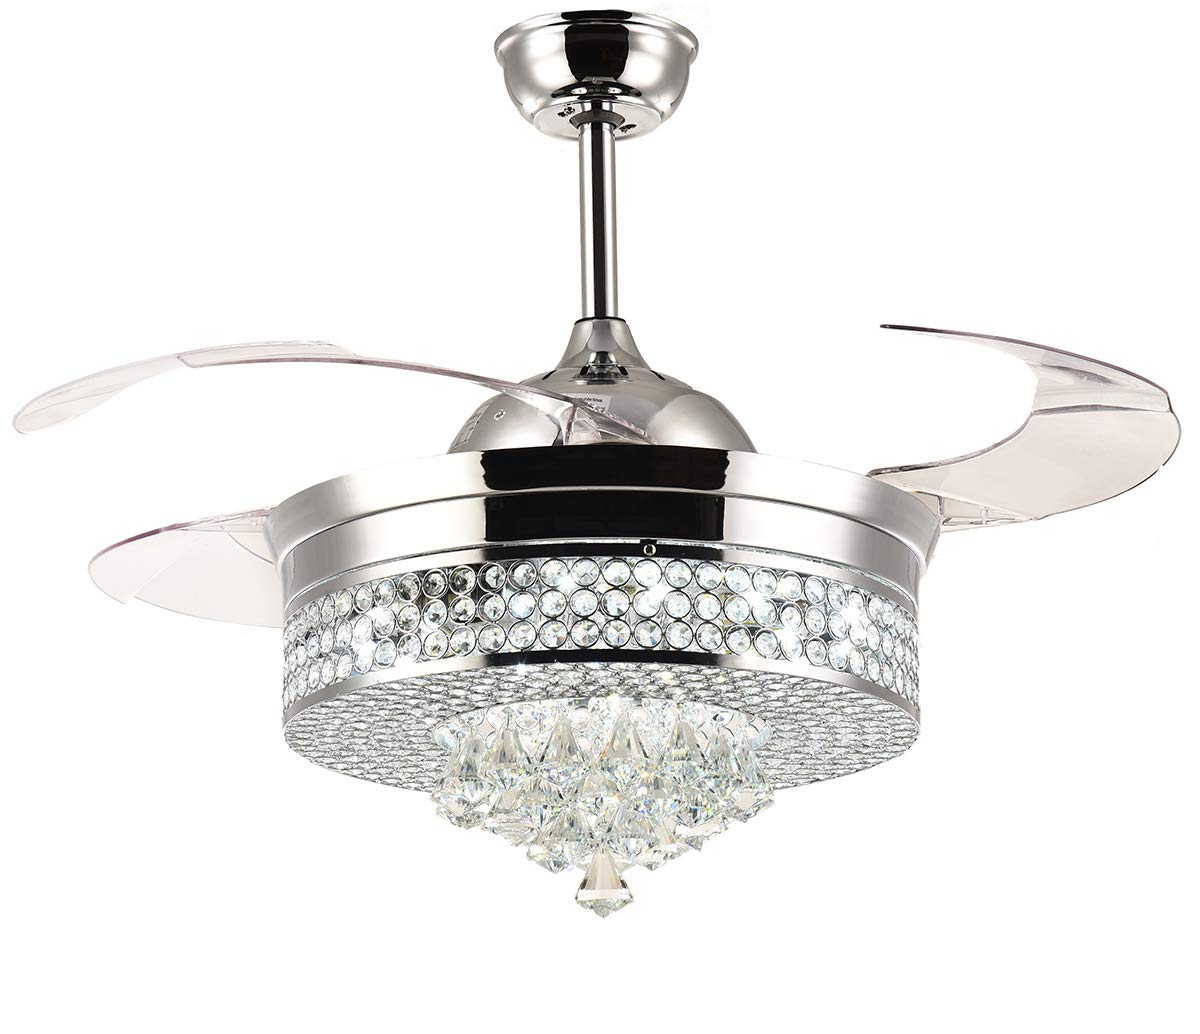 Moooni Dimmable Retractable Ceiling fans with lights and Remote Invisible Crystal Led Chandelier Fan Fandelier Ceiling Fans 42 Polished Chrome